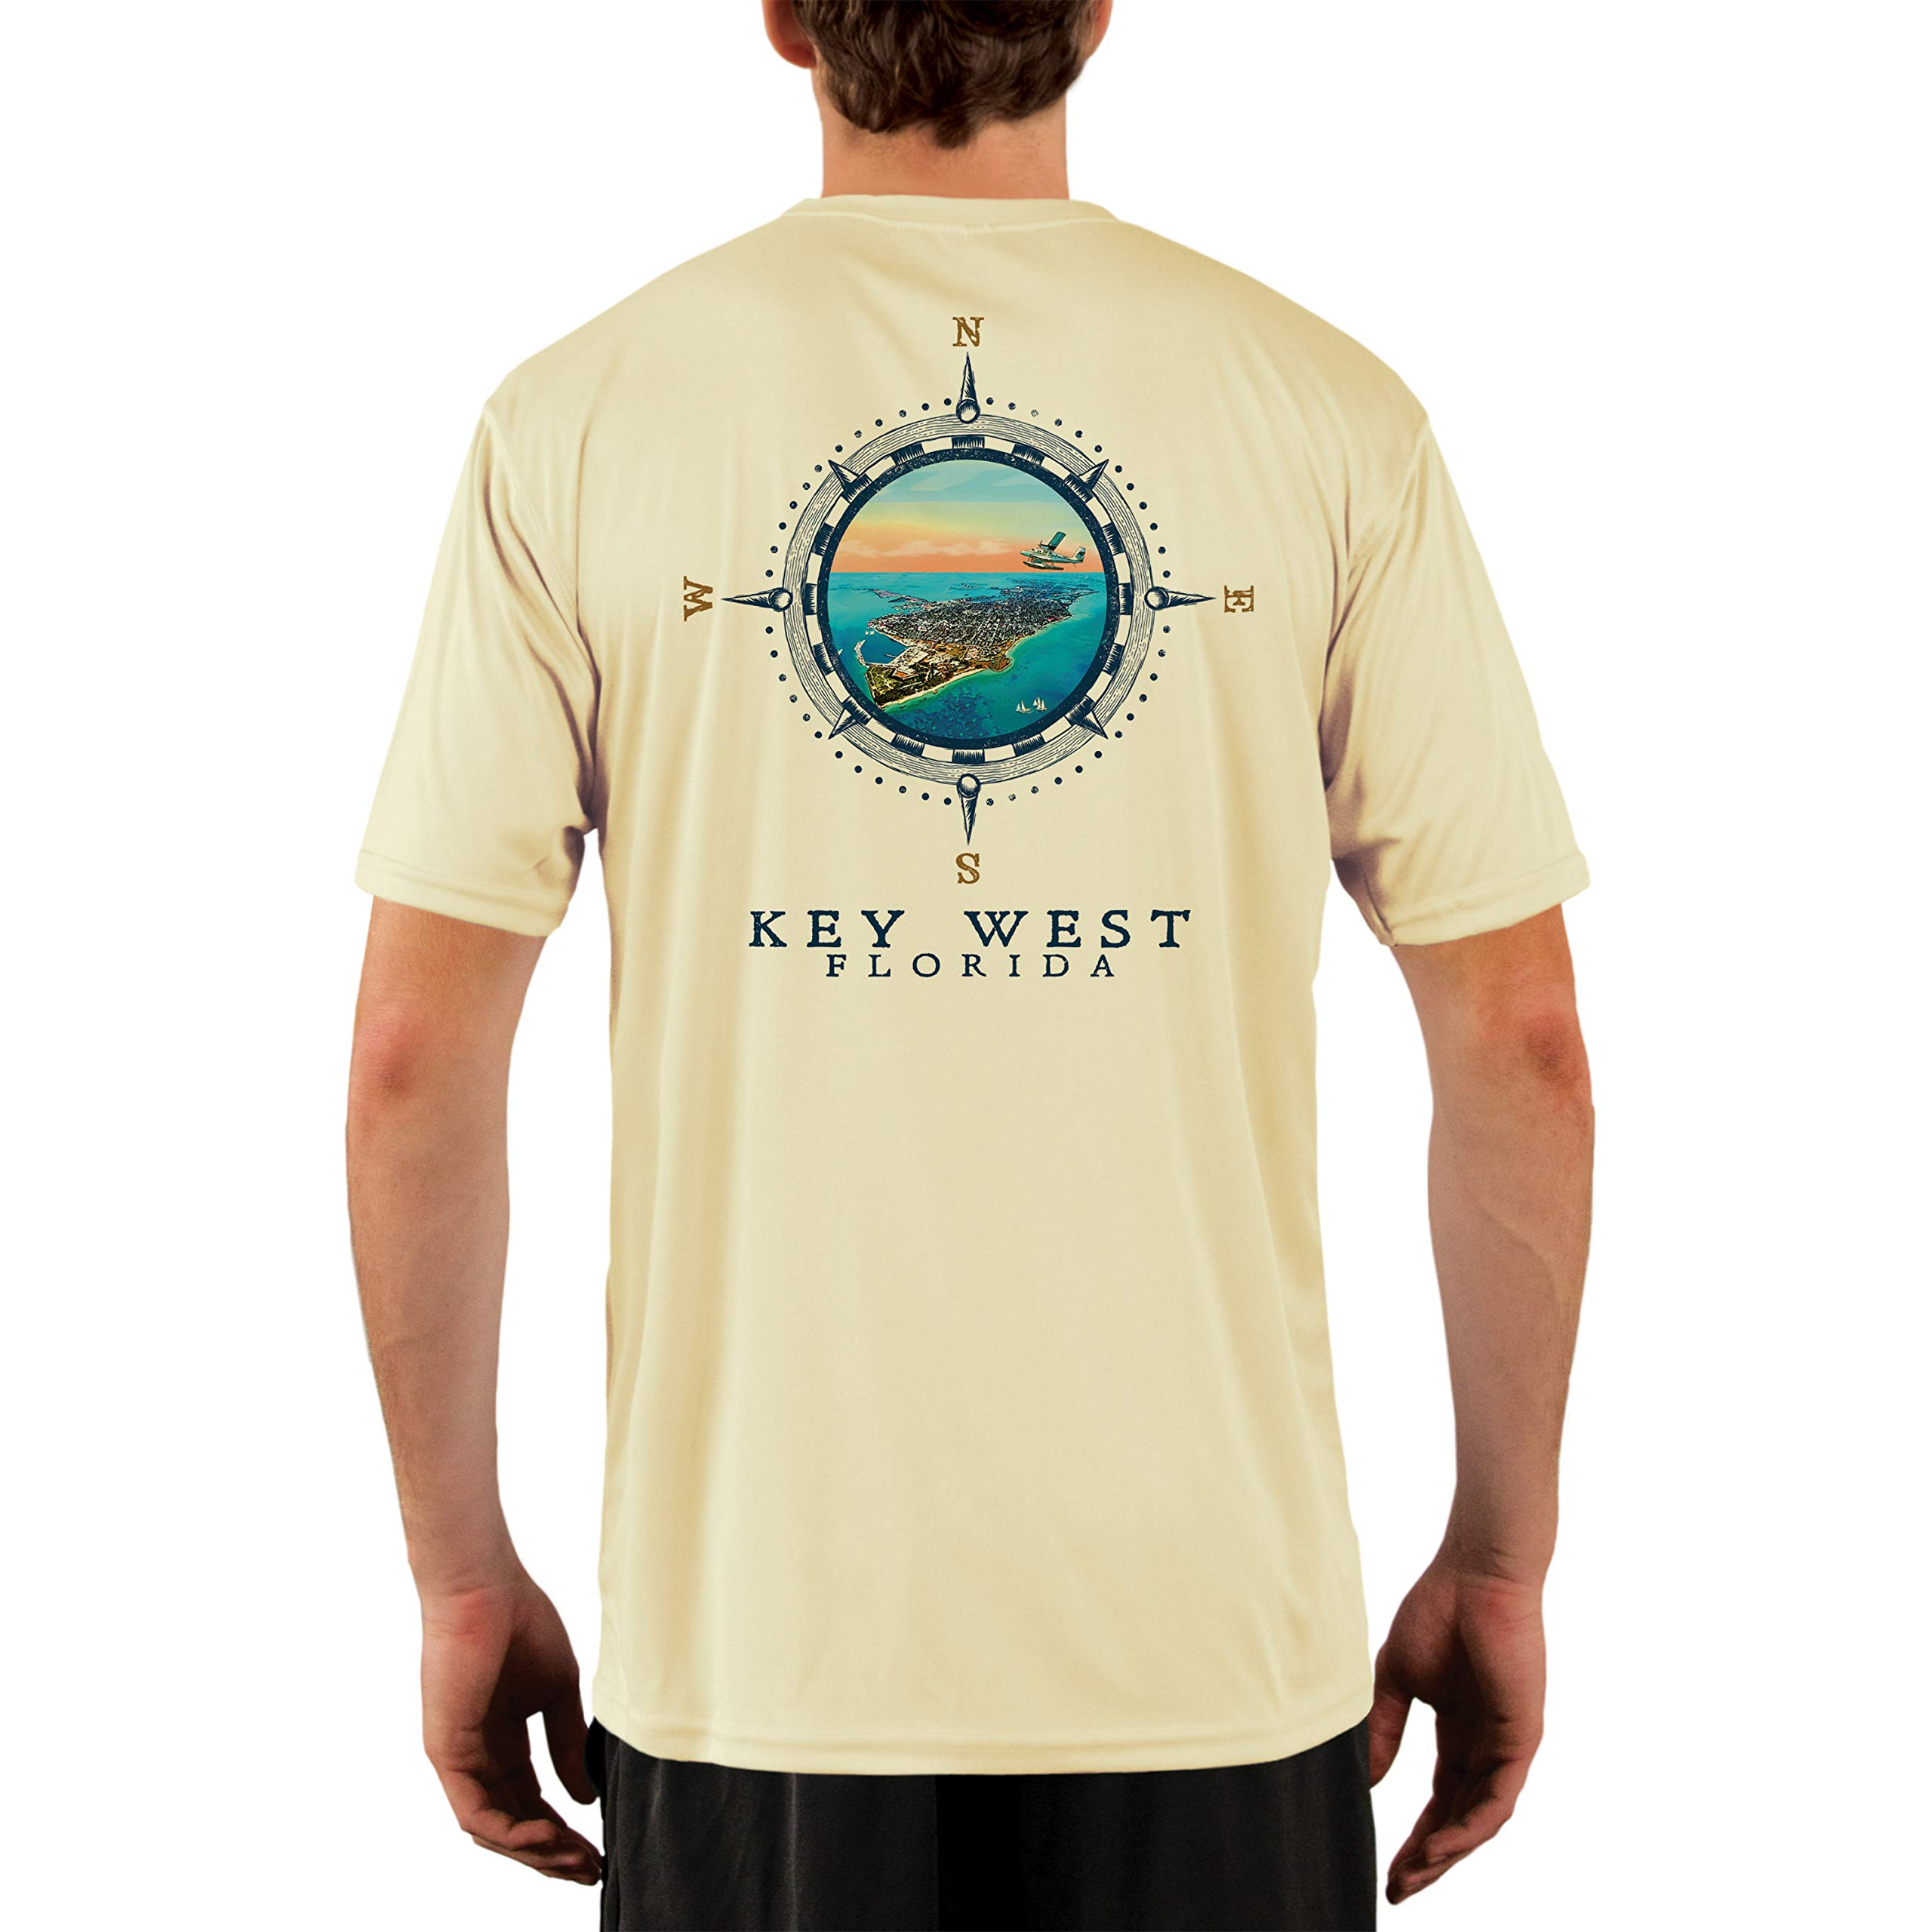 Compass Vintage Key West Men's UPF 50+ Short Sleeve T-Shirt Large Pale Yellow by Altered Latitudes